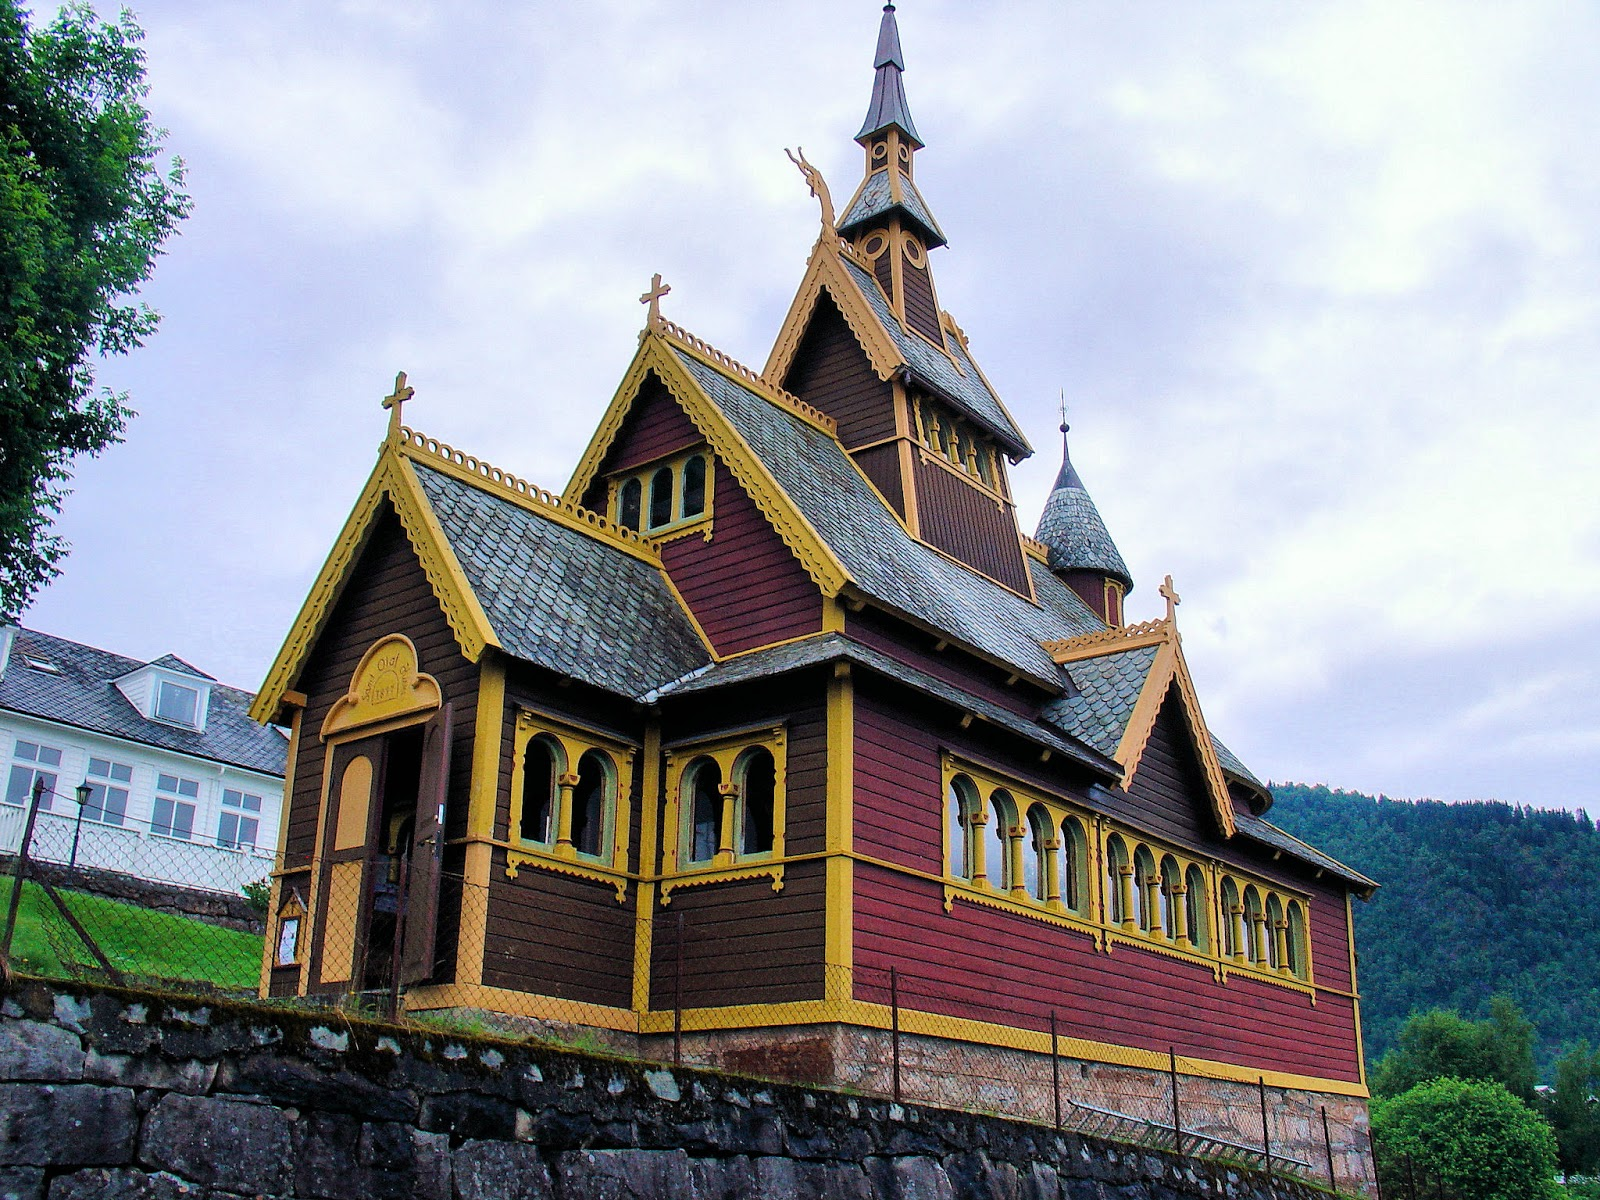 The English Church in Balestrand was built at the request of Knut Kvikne's wife who was a English reverend's daughter. Sadly she passed before the church's completion in 1897.